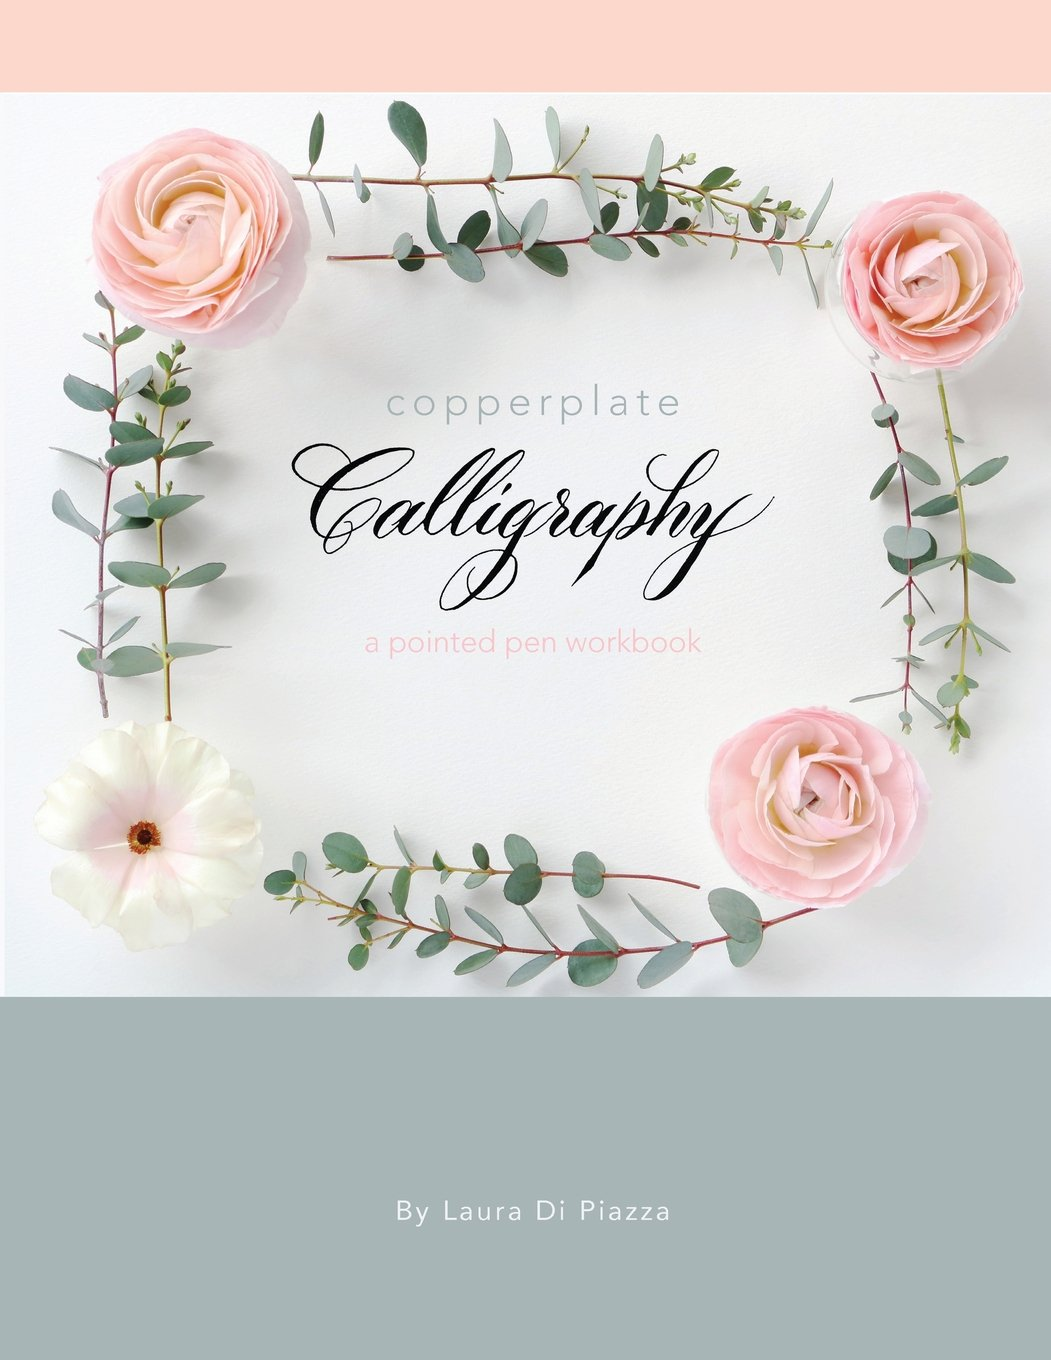 Copperplate Calligraphy: A Pointed Pen Workbook